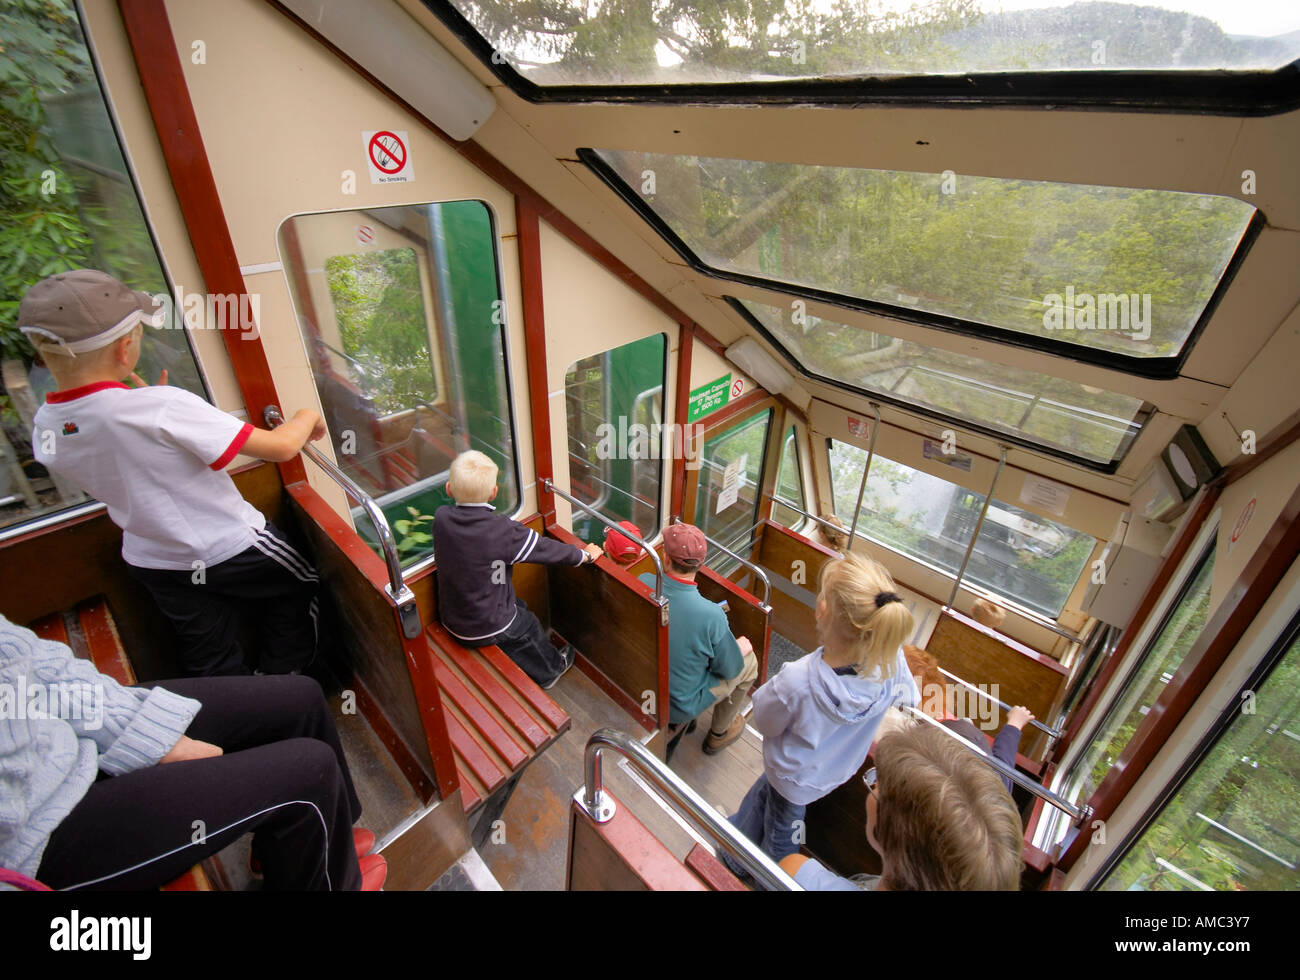 visitors on board the water powered Cliff Railway at the Centre for Alternative Technology Machynlleth Wales - Stock Image